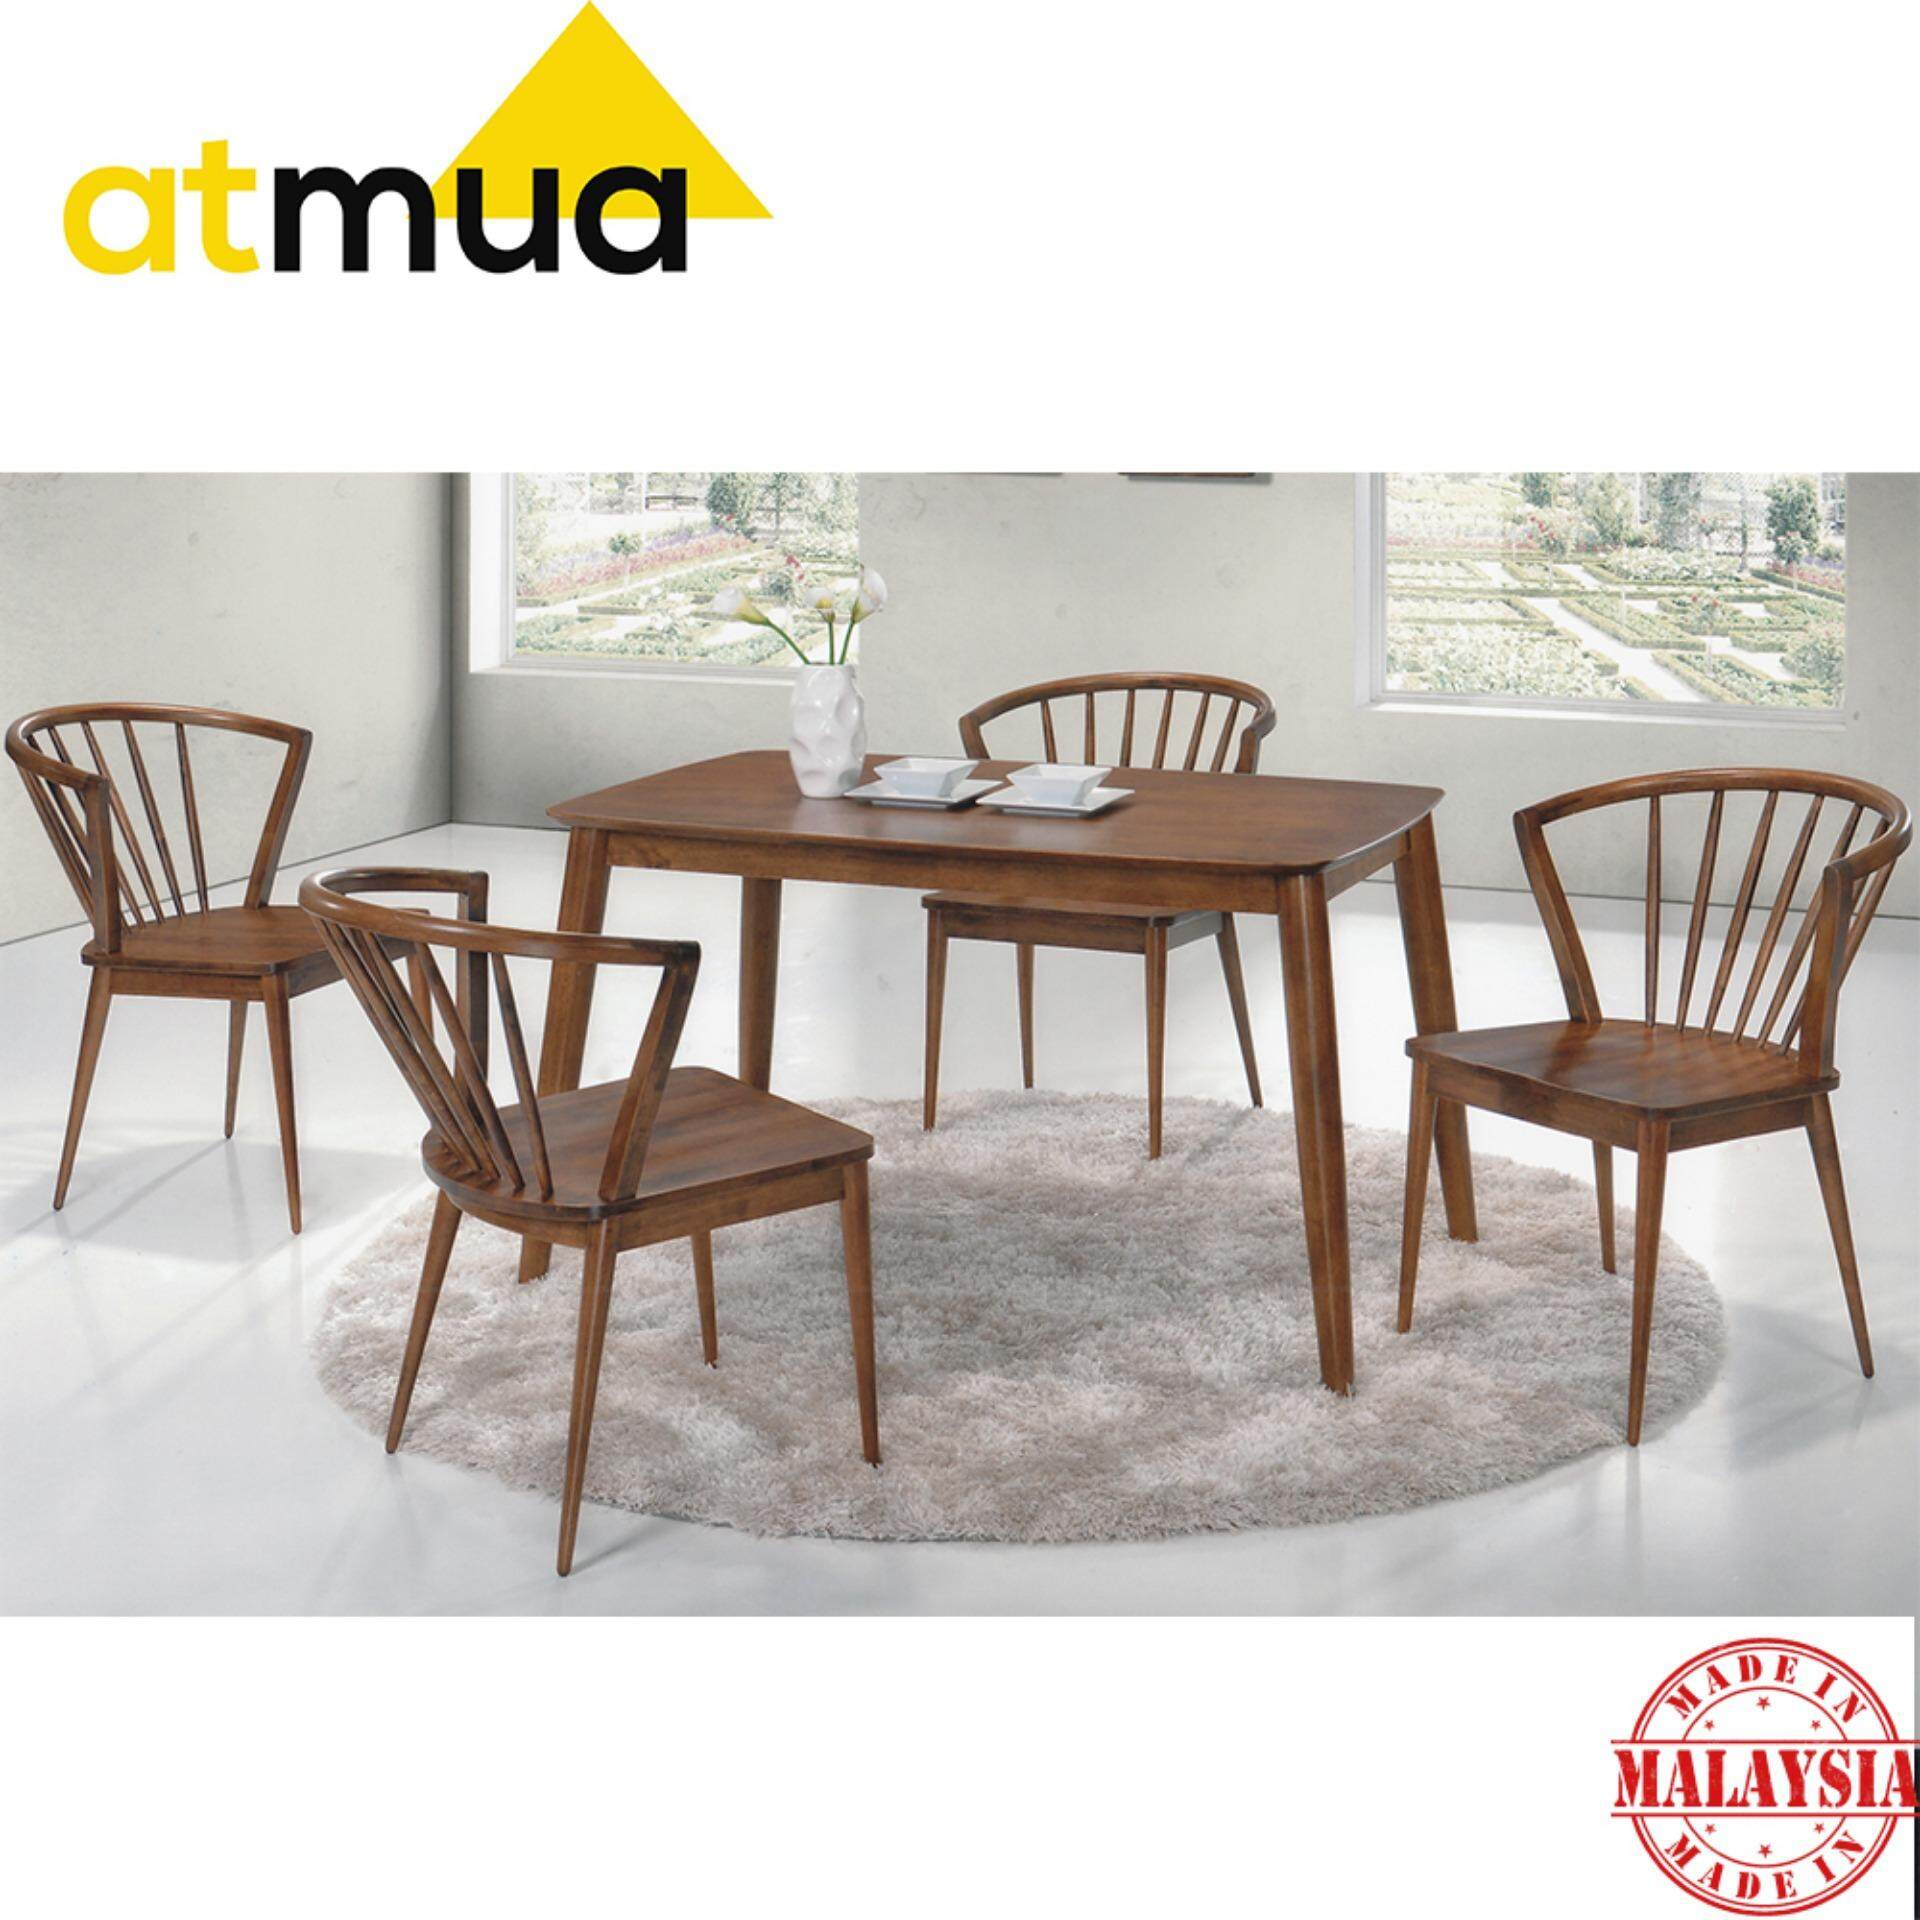 Atmua Blush Dining Set (1 Table + 4 Chair) - Scandinavian Style [Full Solid Rubber Wood]